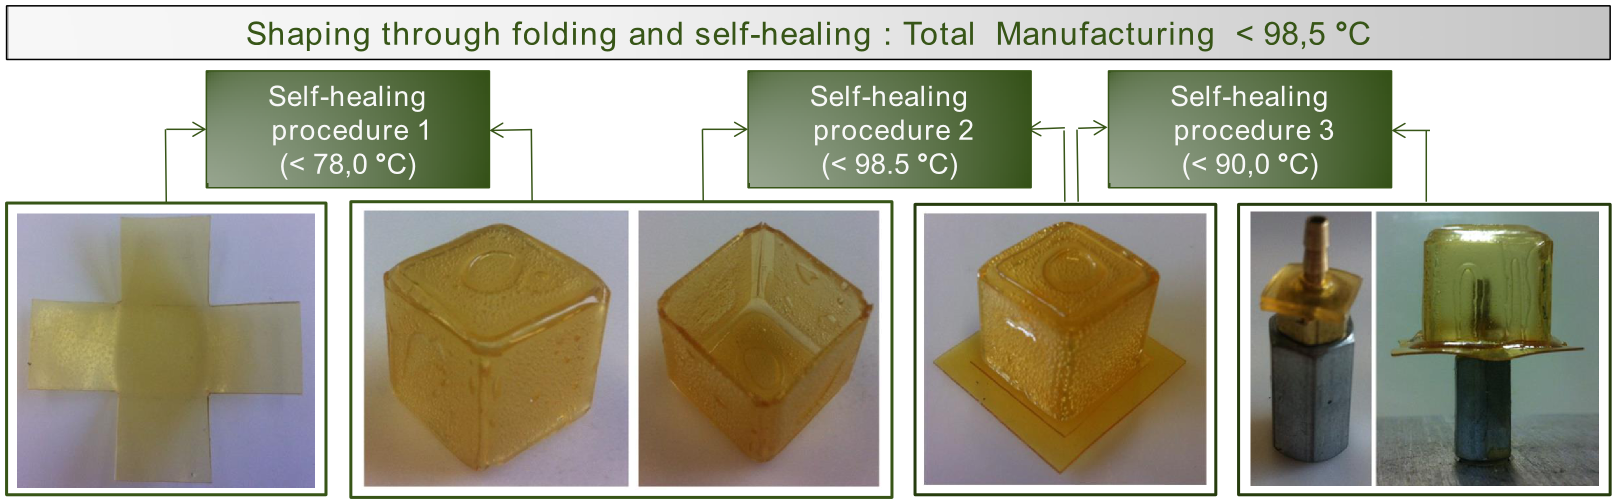 Shaping through folding and self-healing